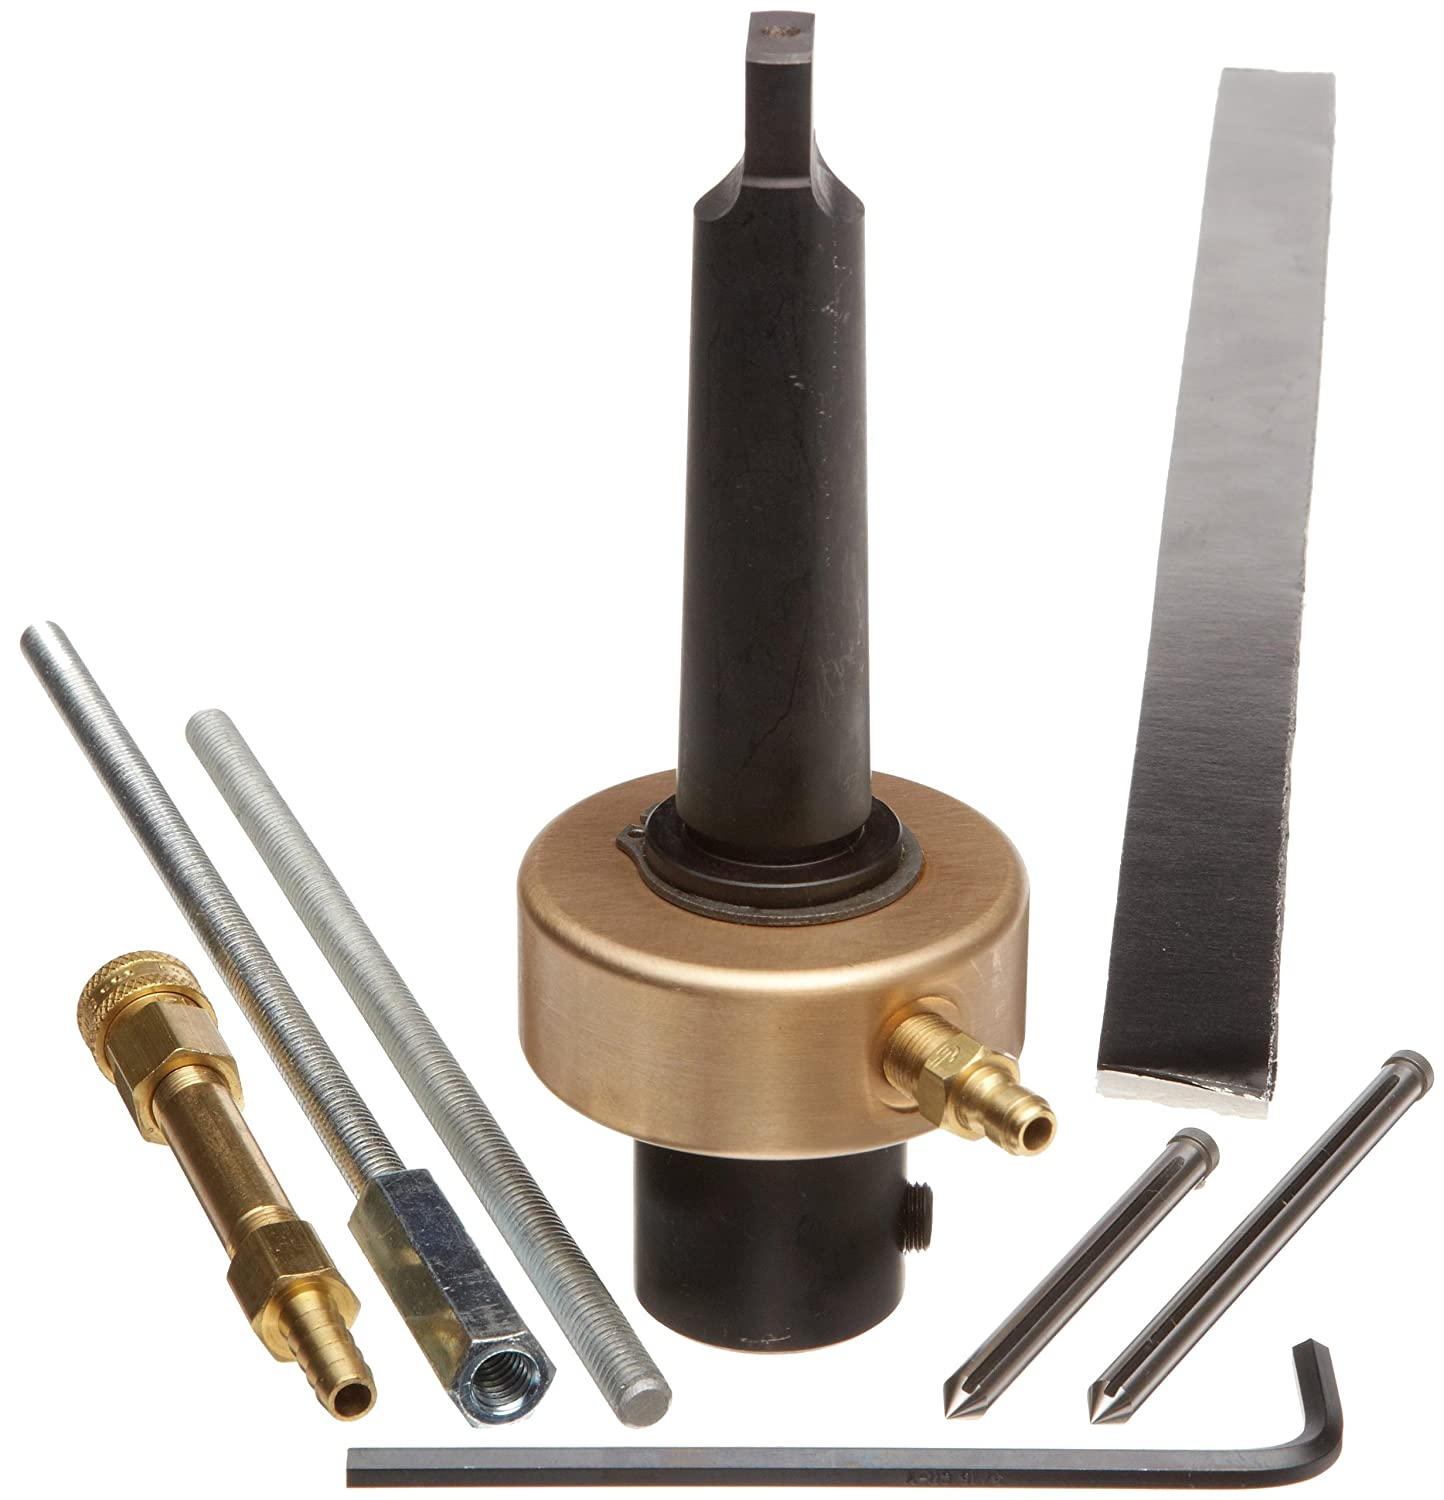 Year-end annual account Jancy Slugger IA3MT 3 Morse Ranking TOP7 Arbor Industrial Coolant Taper With